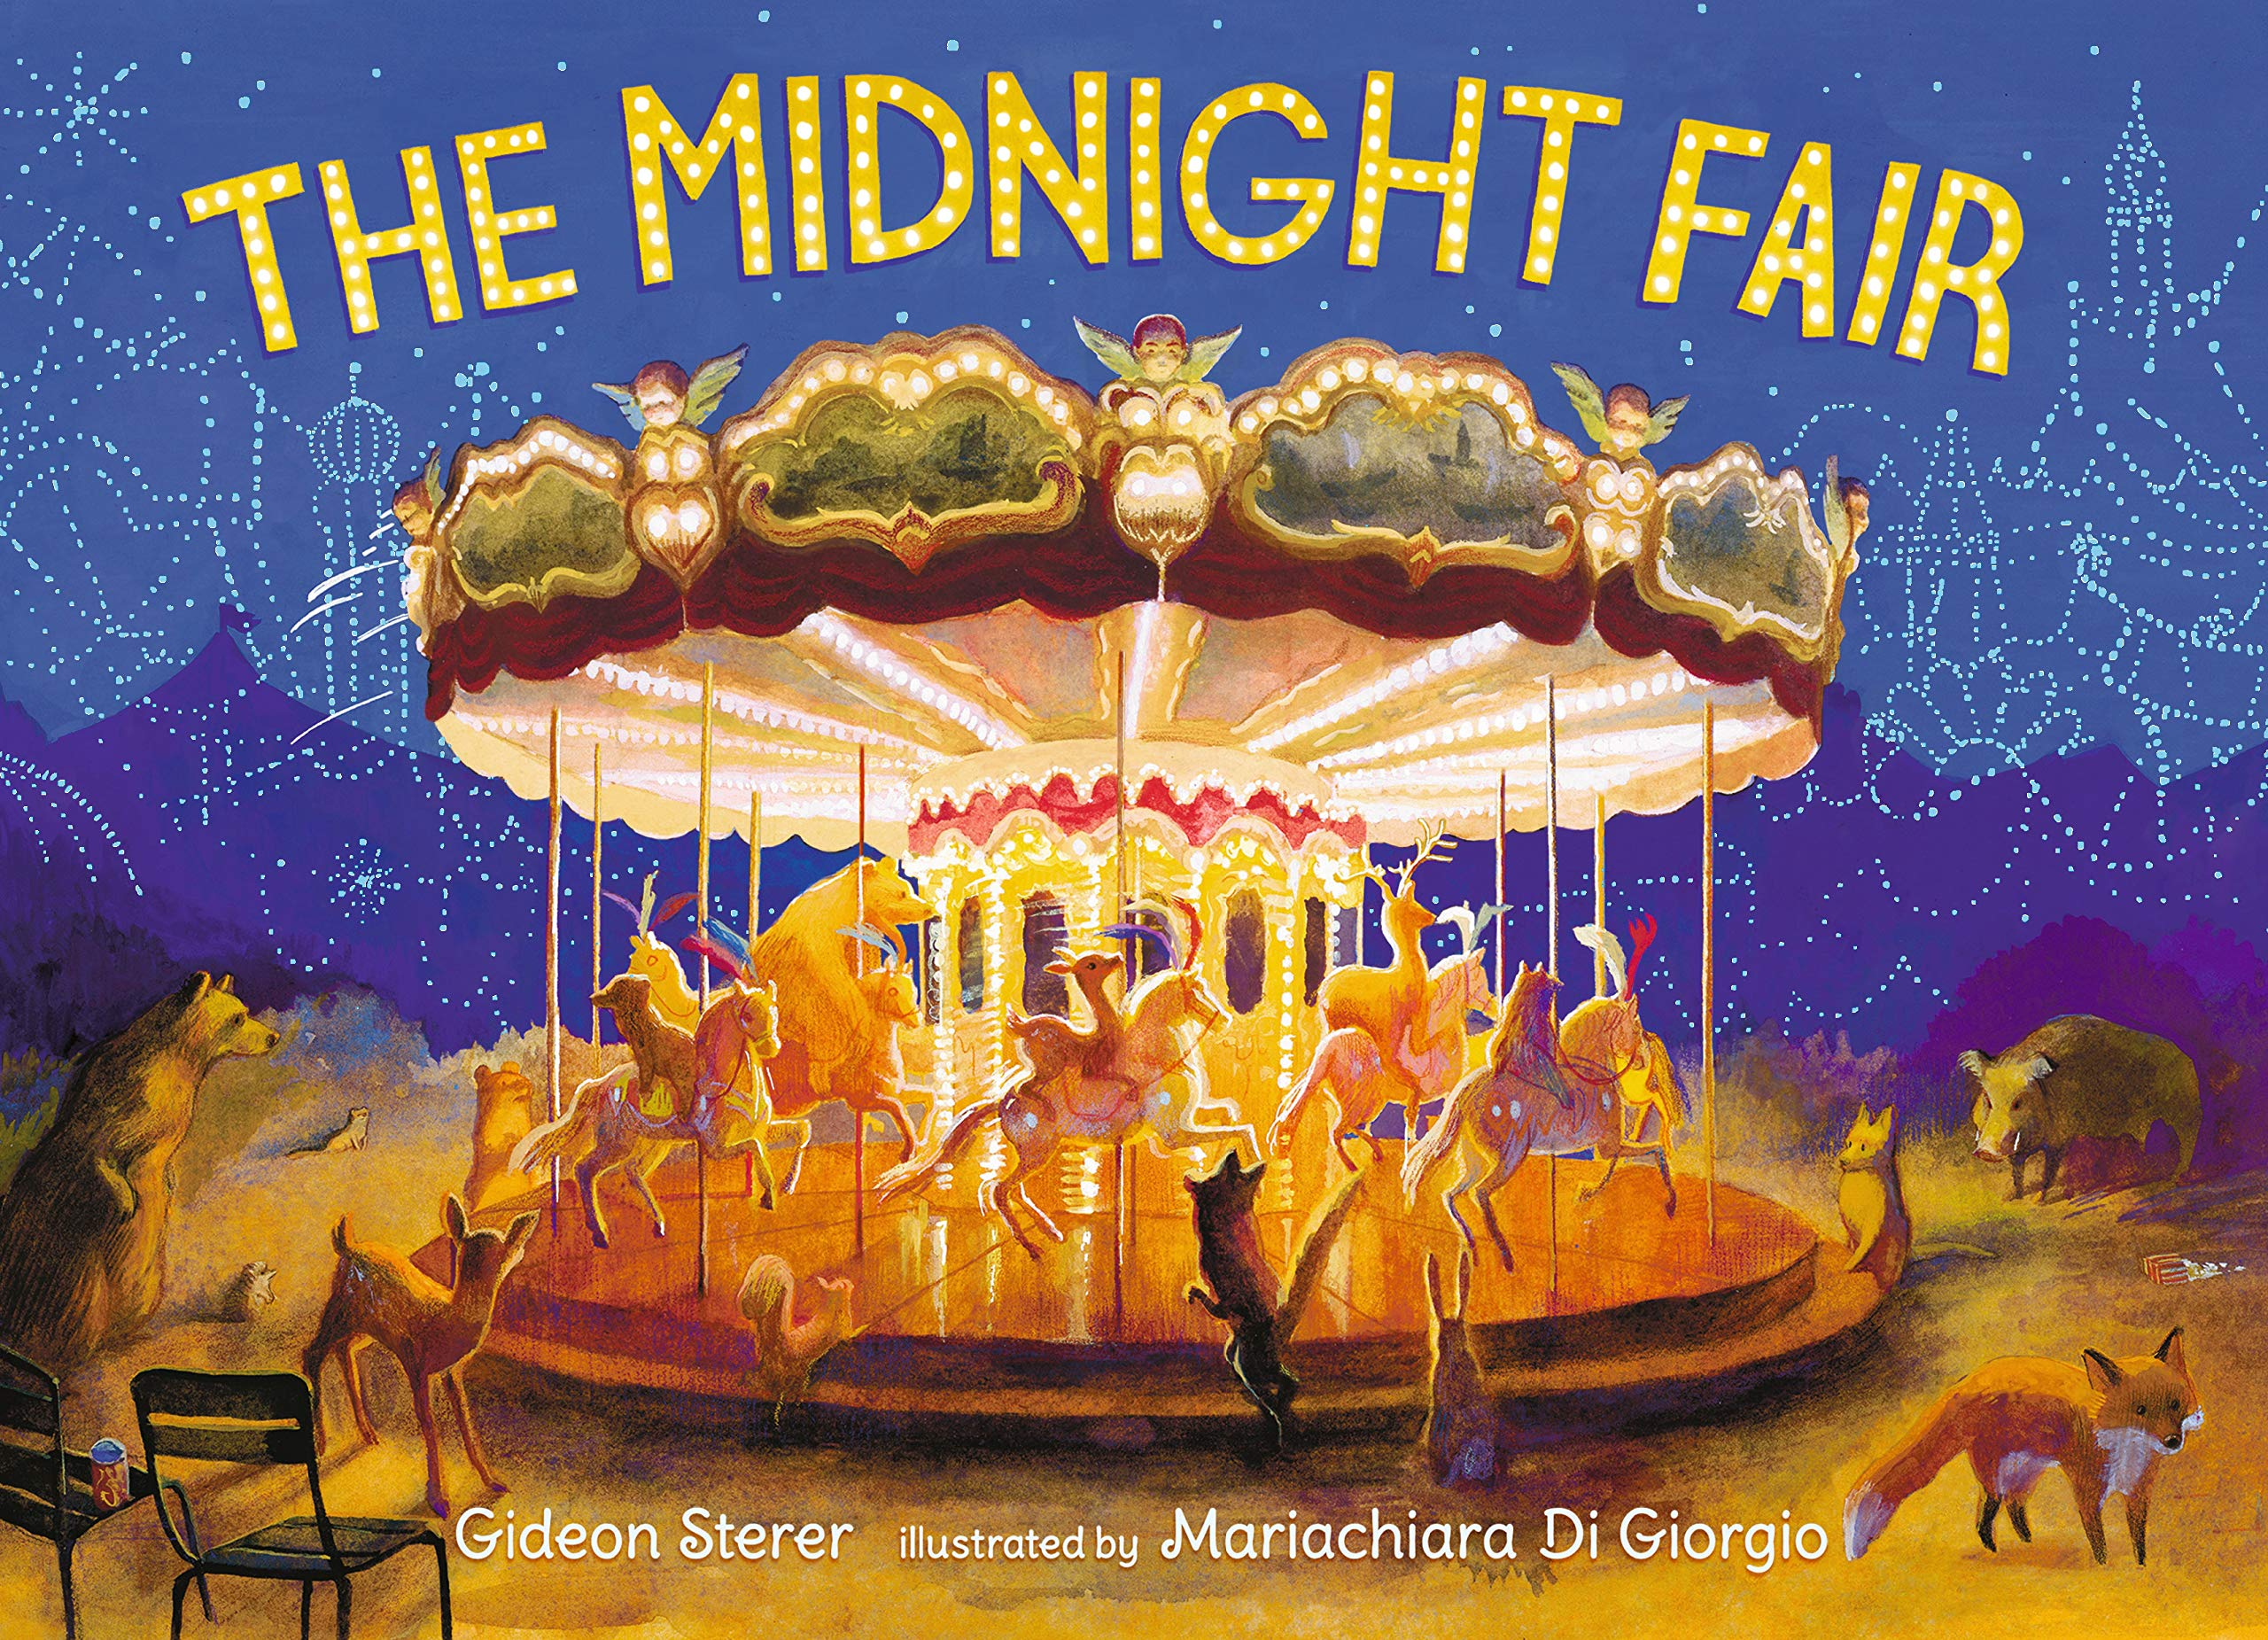 The Midnight Fair: Sterer, Gideon, Di Giorgio, Mariachiara: 9781536211153:  Amazon.com: Books